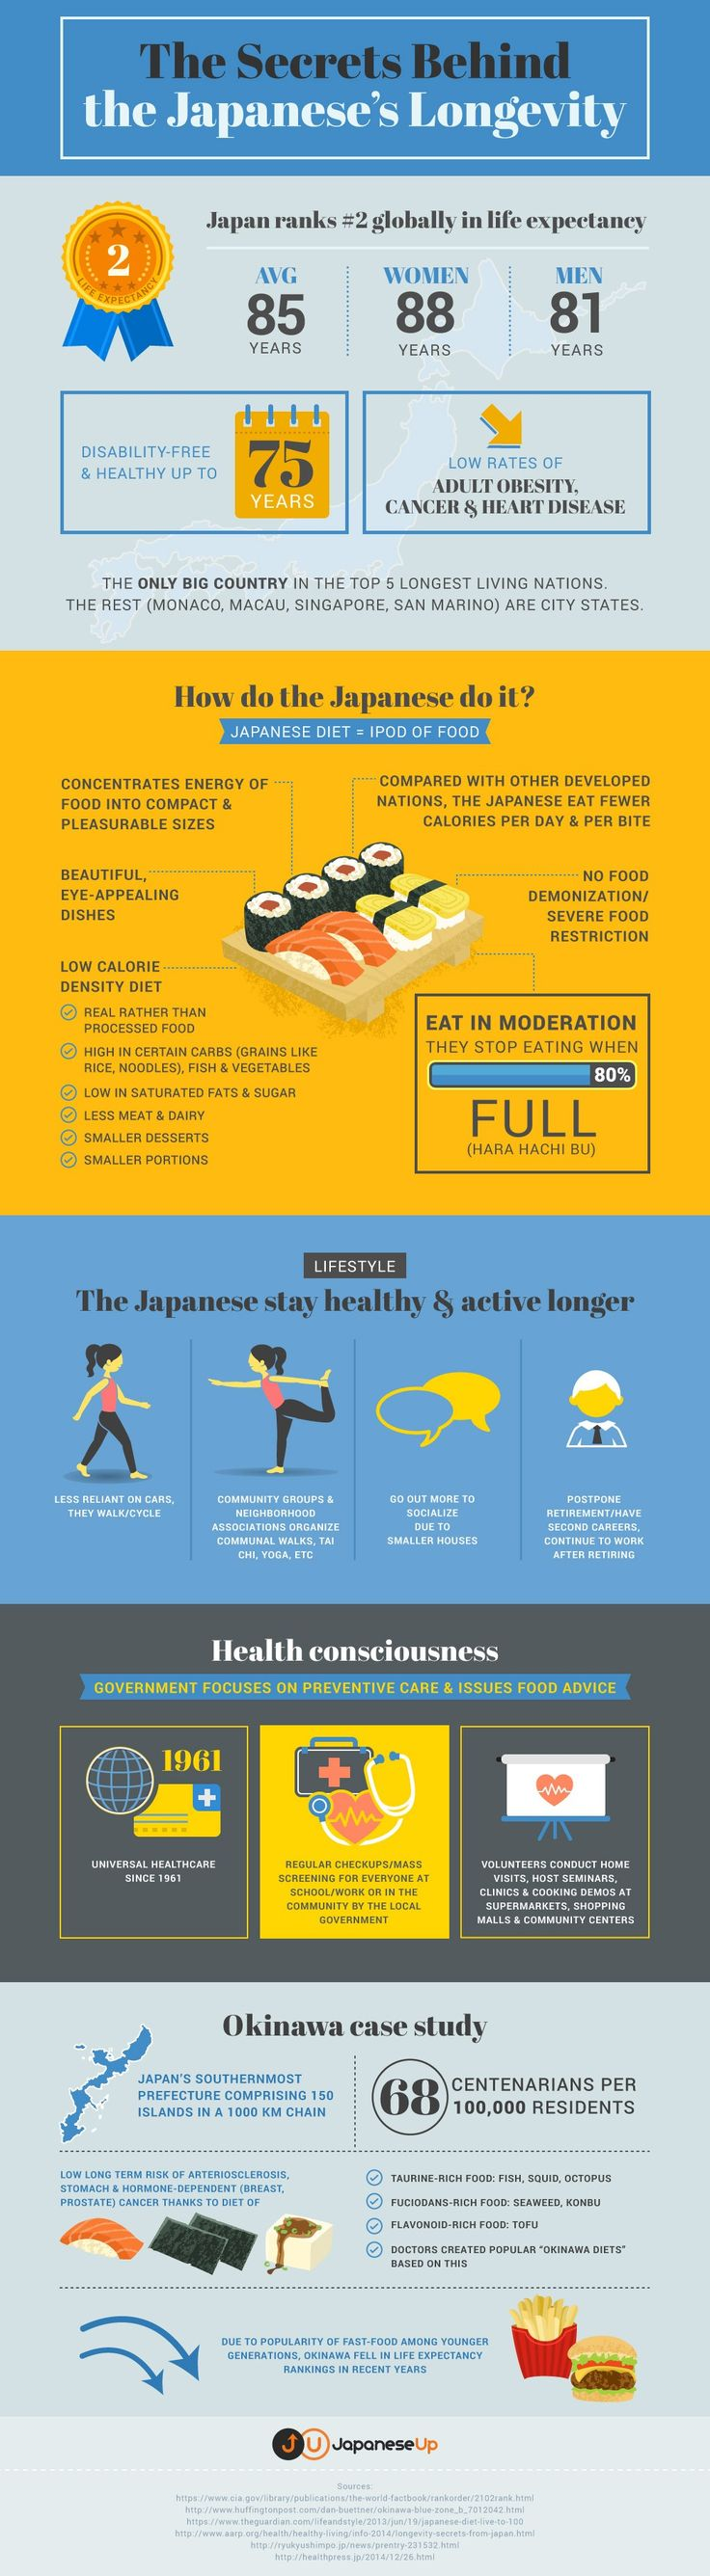 The Secrets Behind the Japanese's Longevity #Infographic #Diet #Health